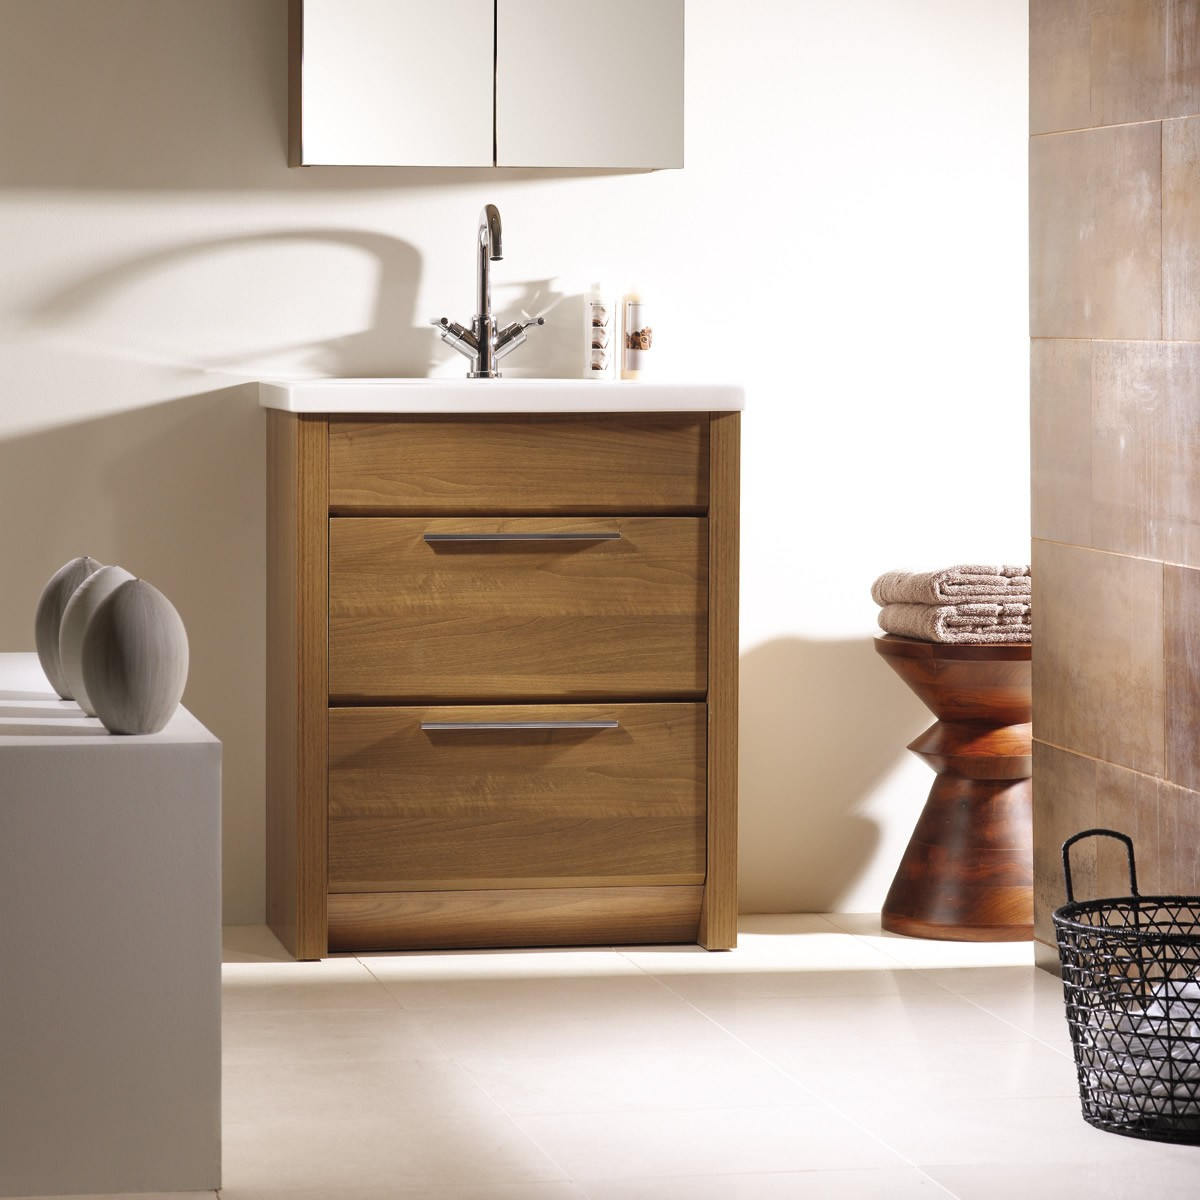 New Roper Rhodes Kato 700mm Freestanding Bathroom Vanity Walnut freestanding vanity unit